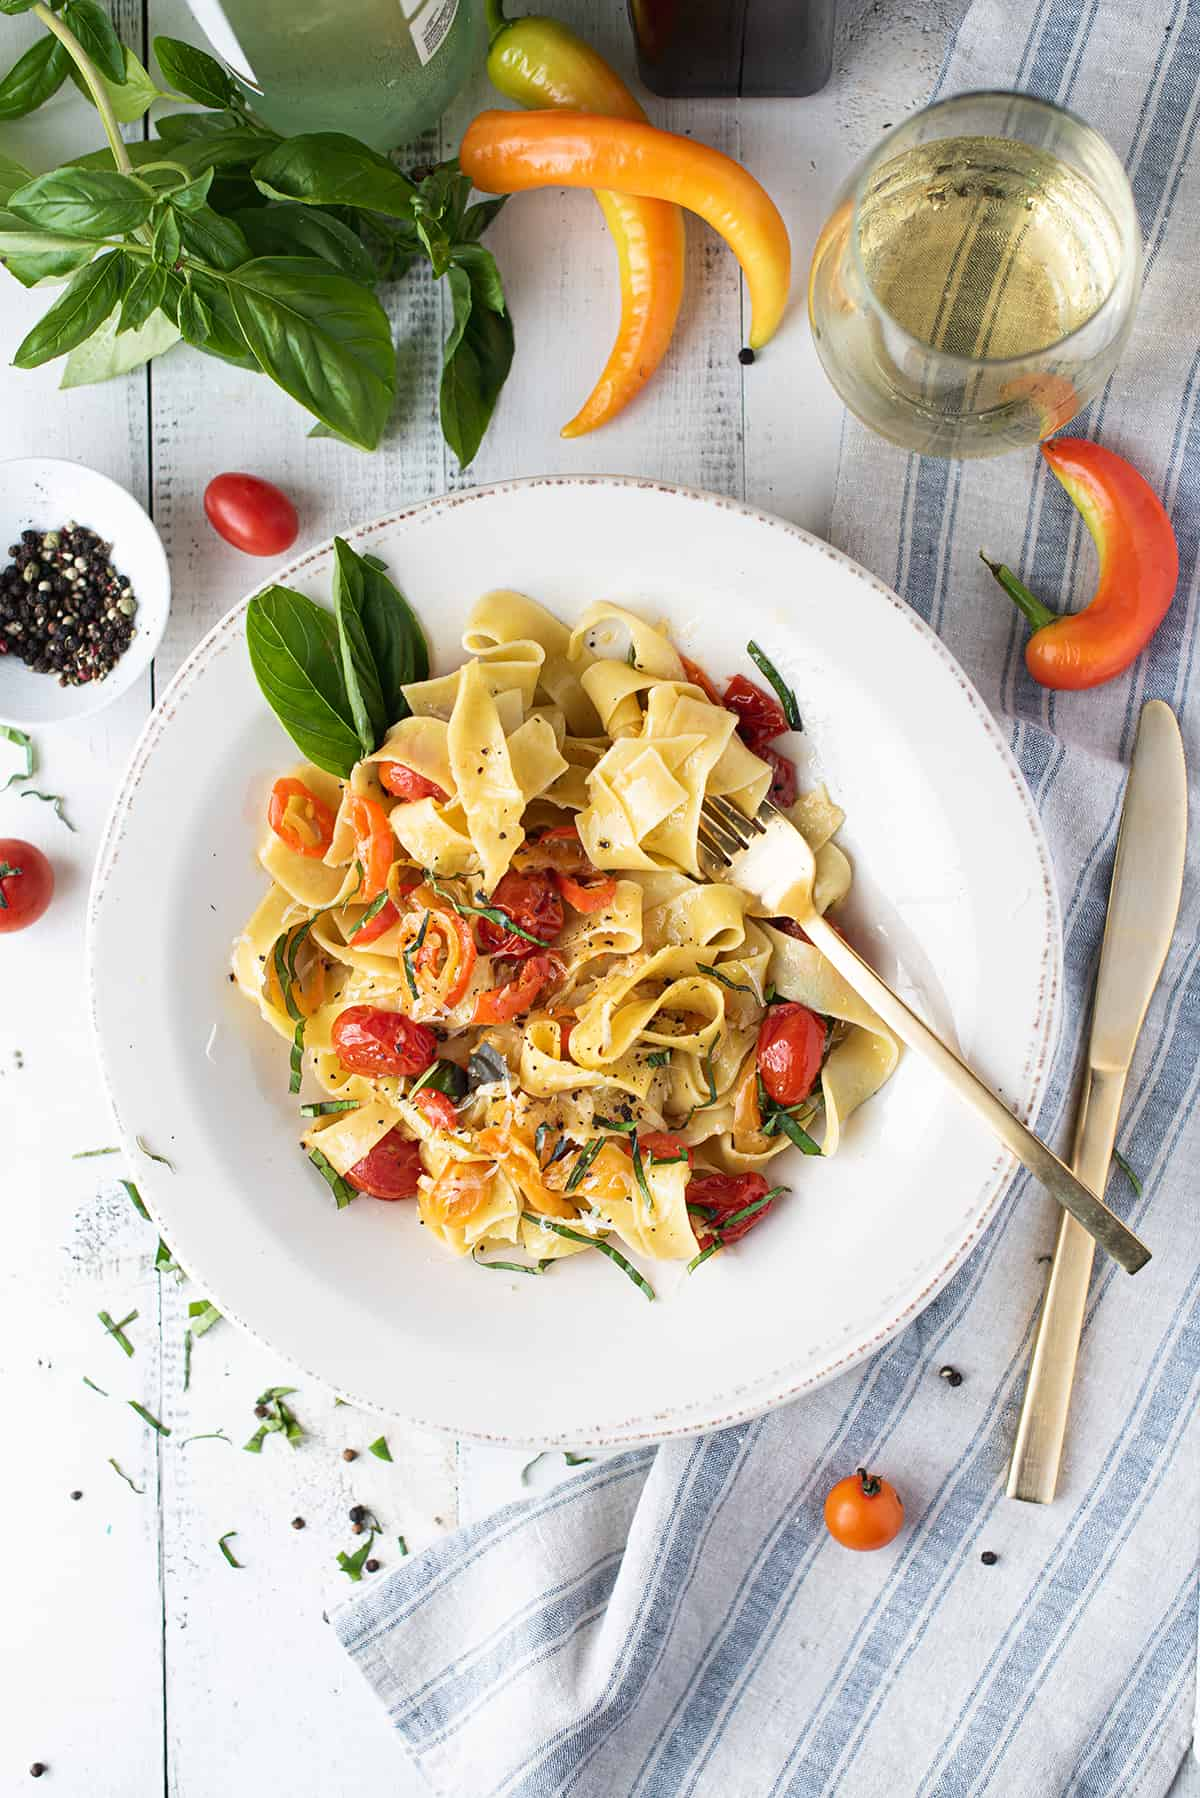 white bowl of pappardelle with tomatoes, peppers, basil on white table with blue napkin